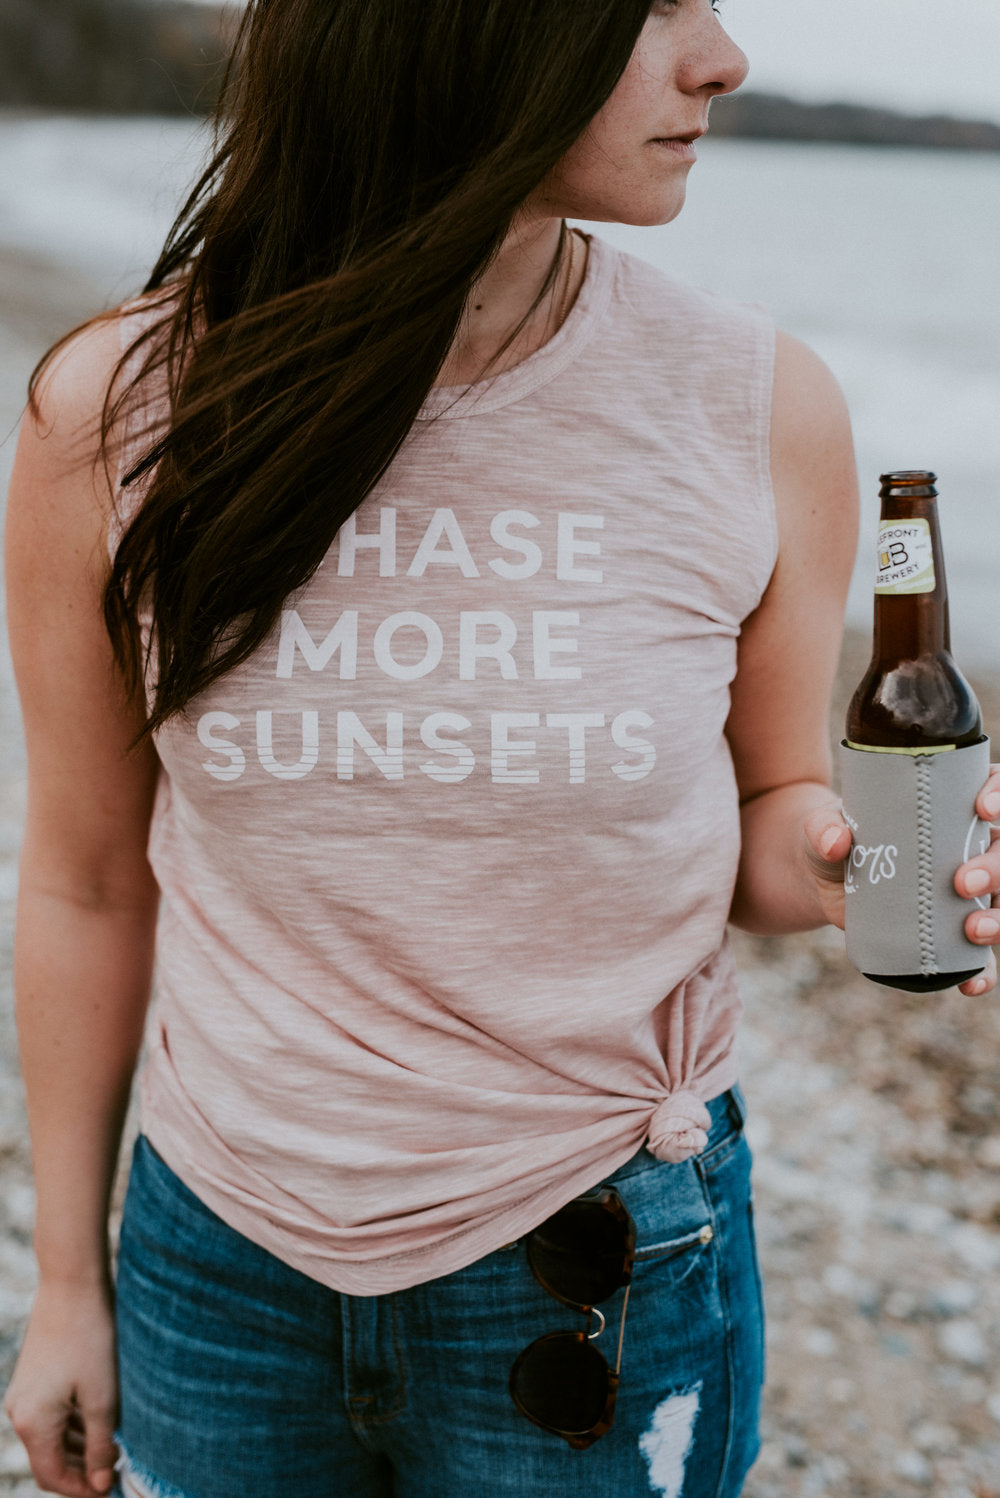 chase more sunsets pink blush tank top and beverage koozie